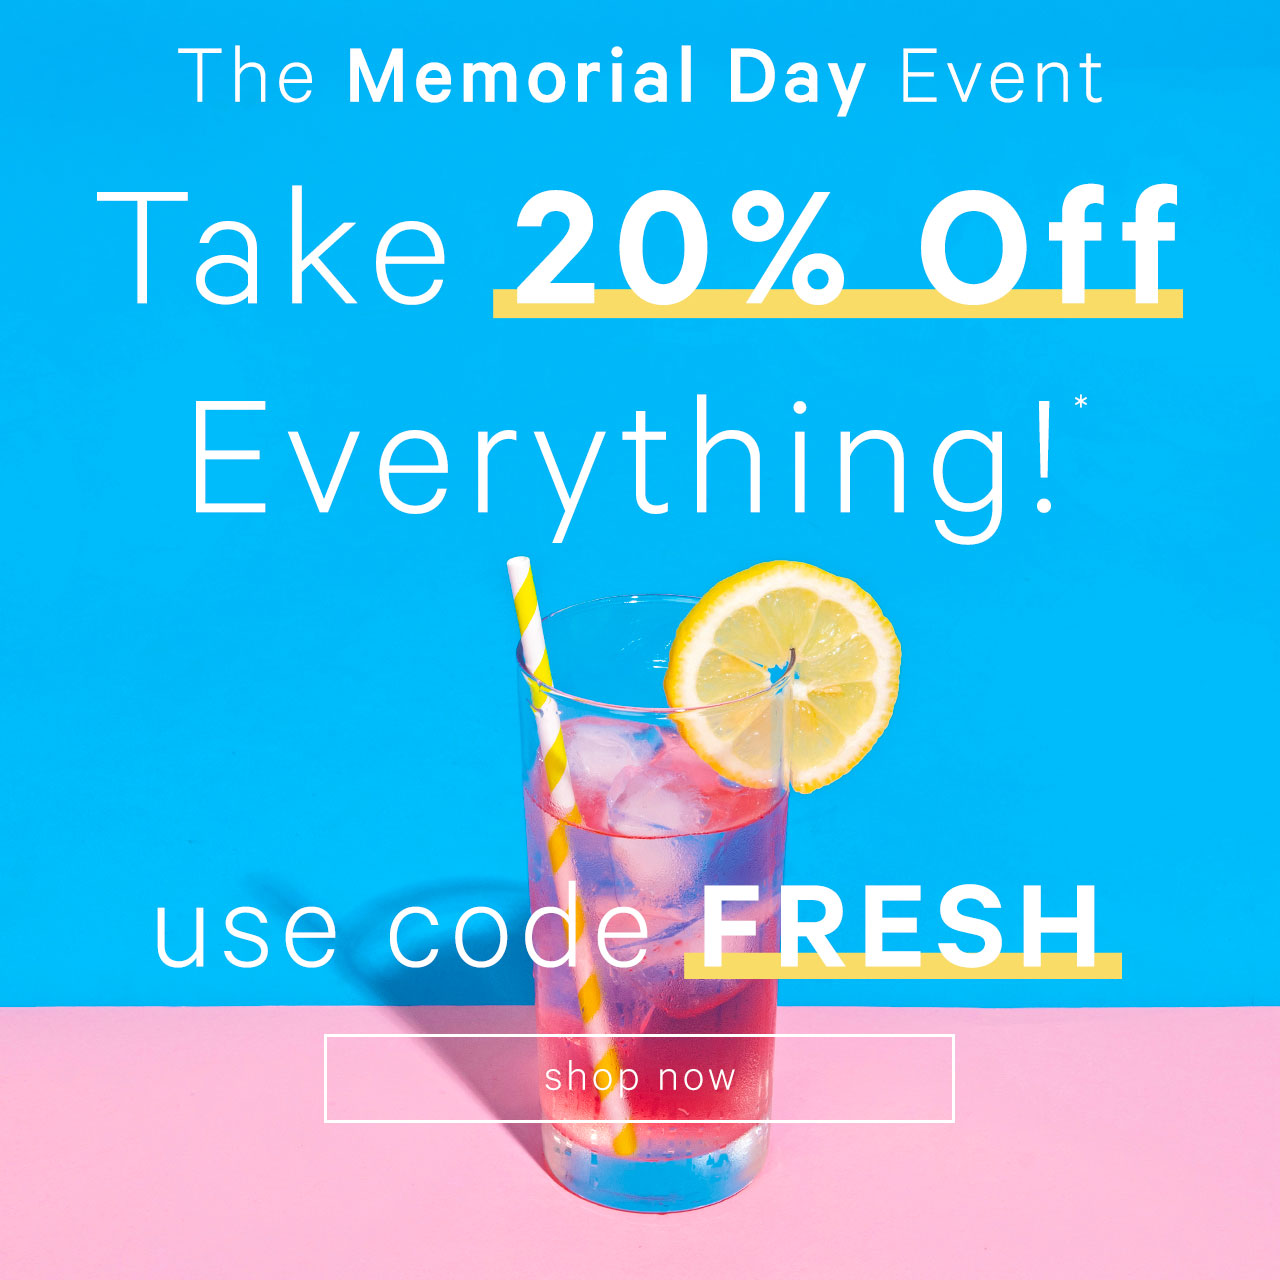 Unique Vintage — Take 20% off Everything* with code FRESH